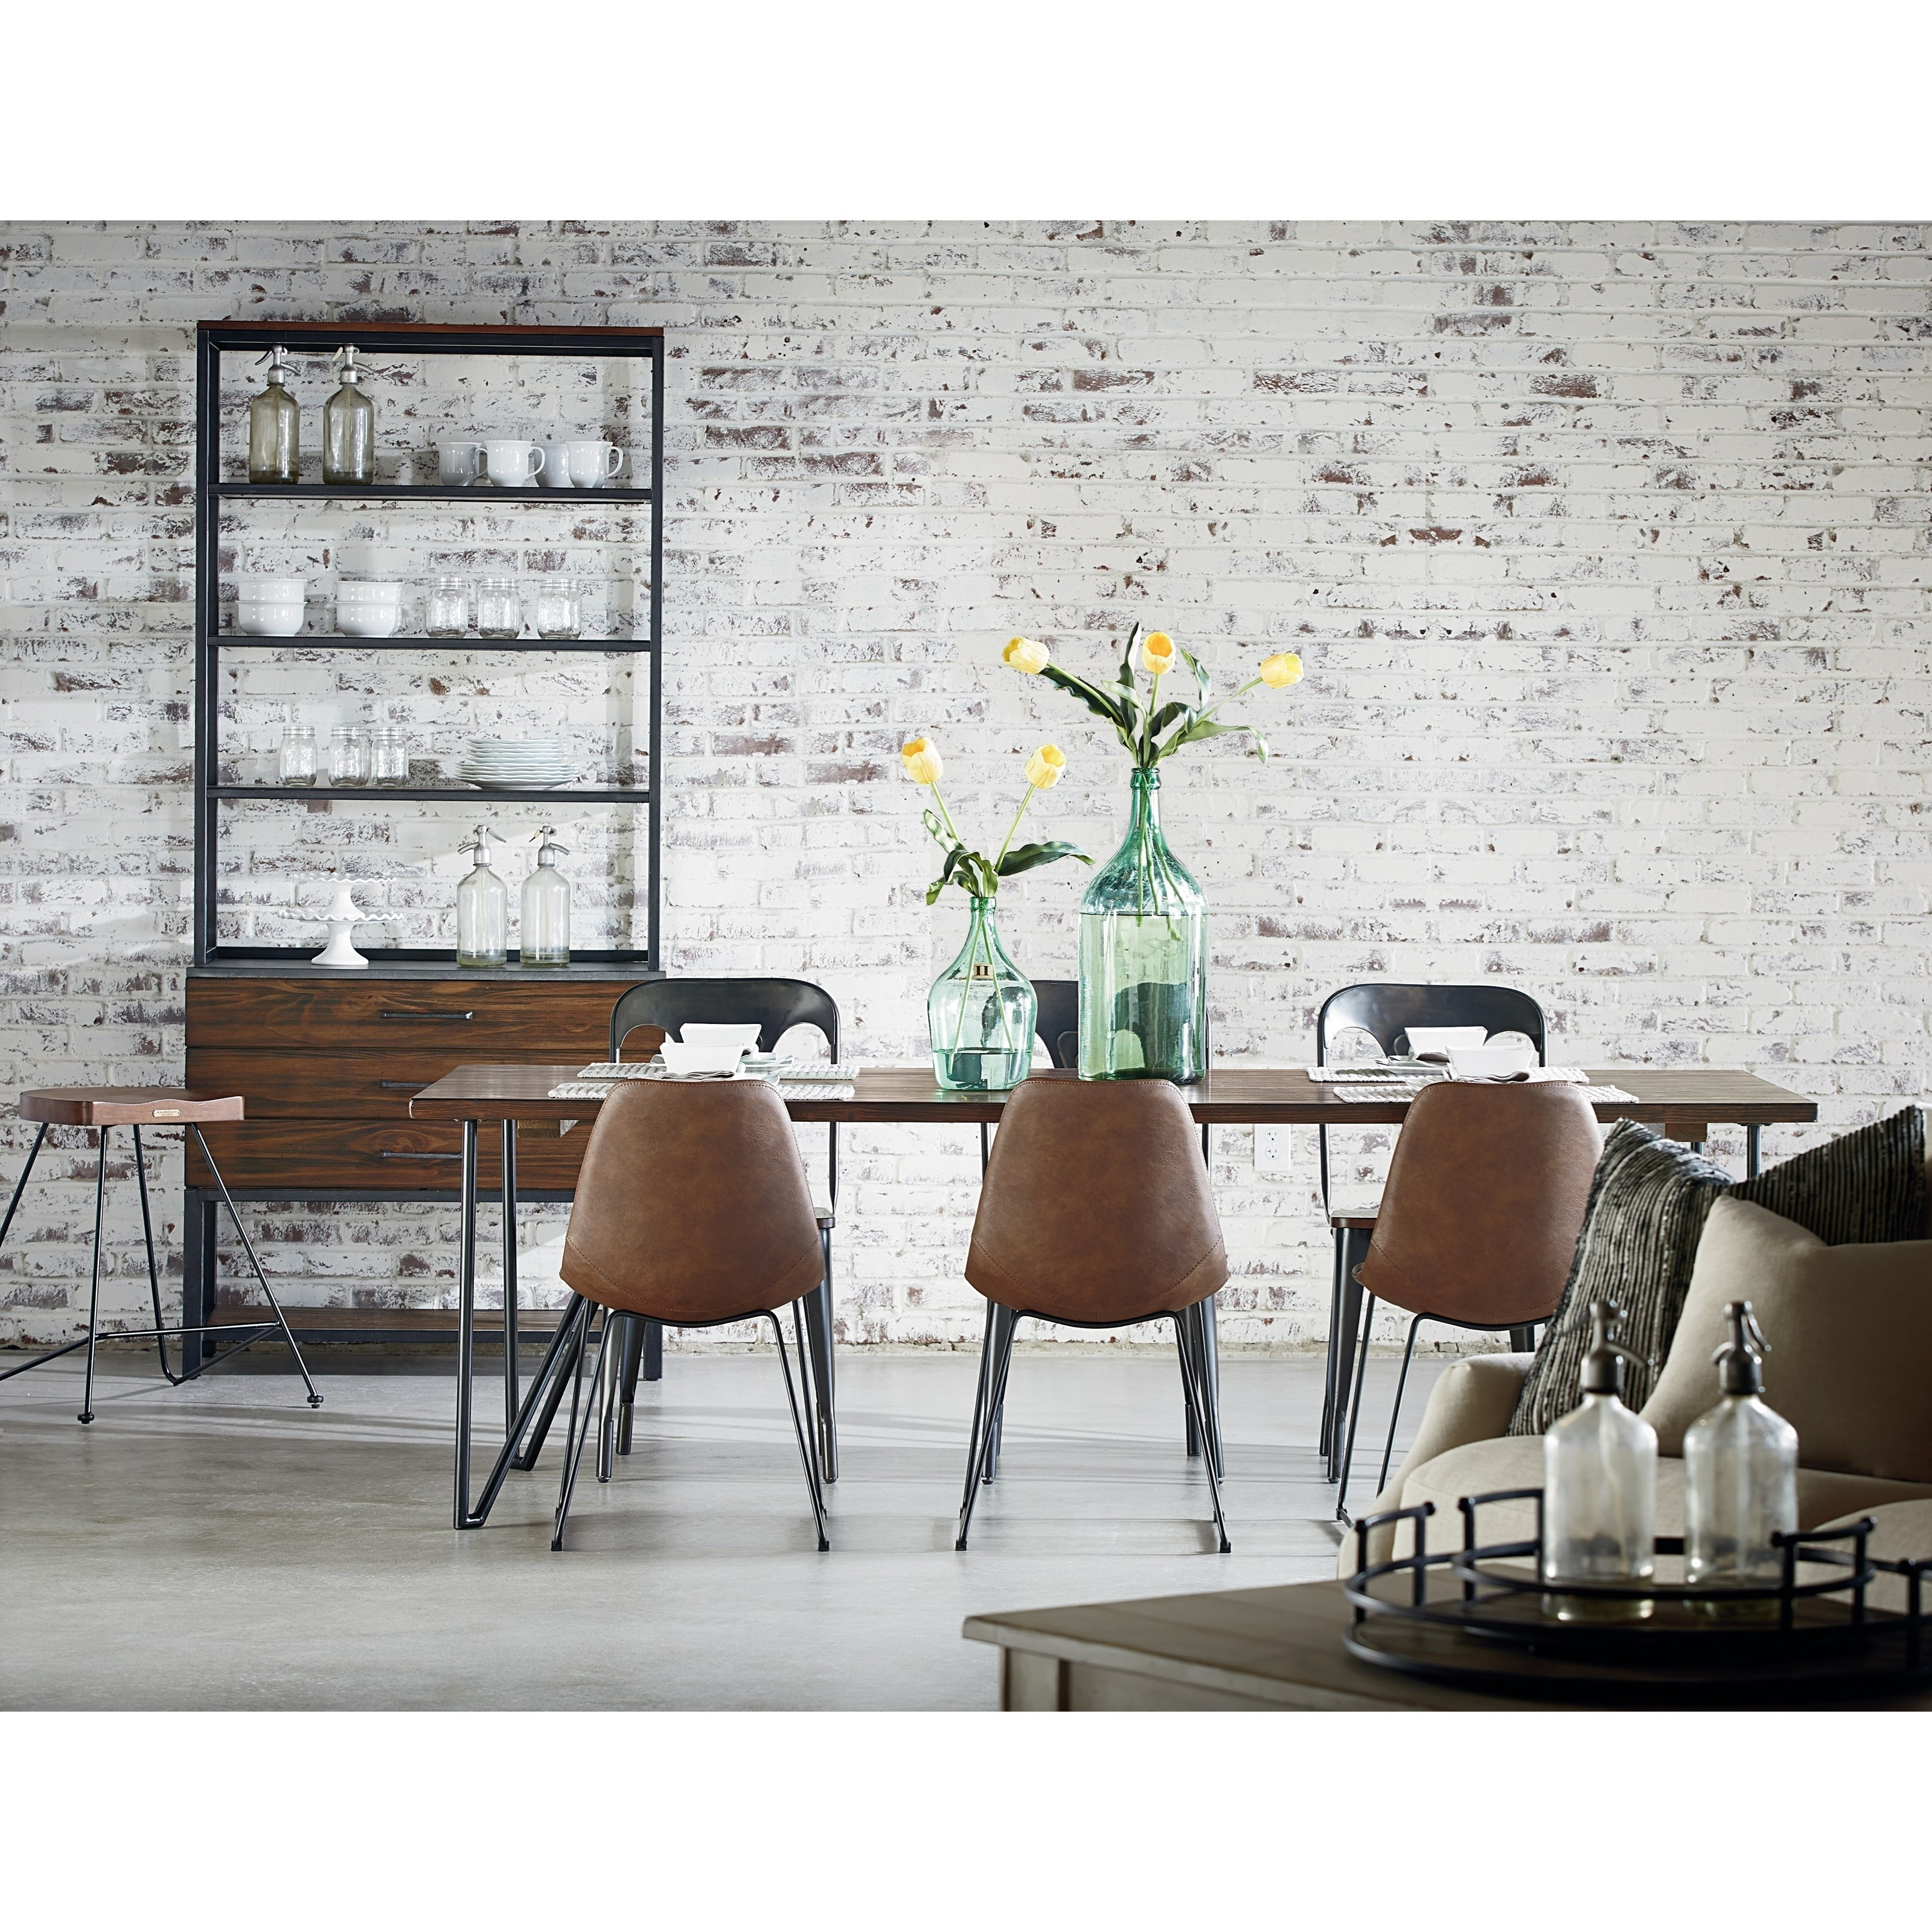 Magnolia Homejoanna Gaines Boho Dining Room With Molded Shell Pertaining To Recent Magnolia Home Molded Shell Saddle Side Chairs (#9 of 20)